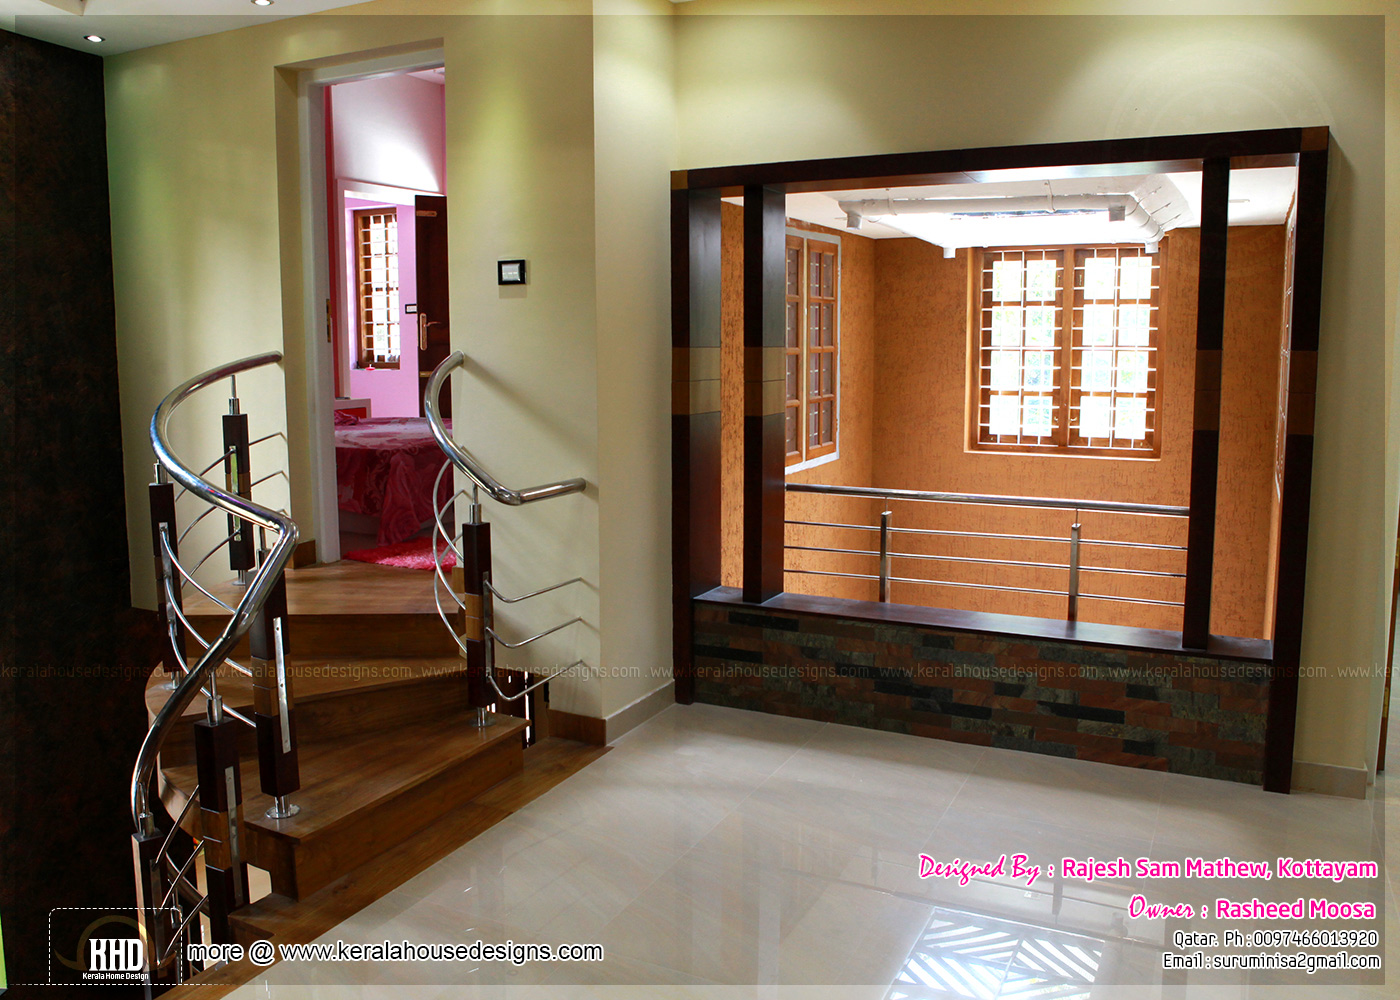 Kerala interior design with photos kerala home design for Interior design plans for houses